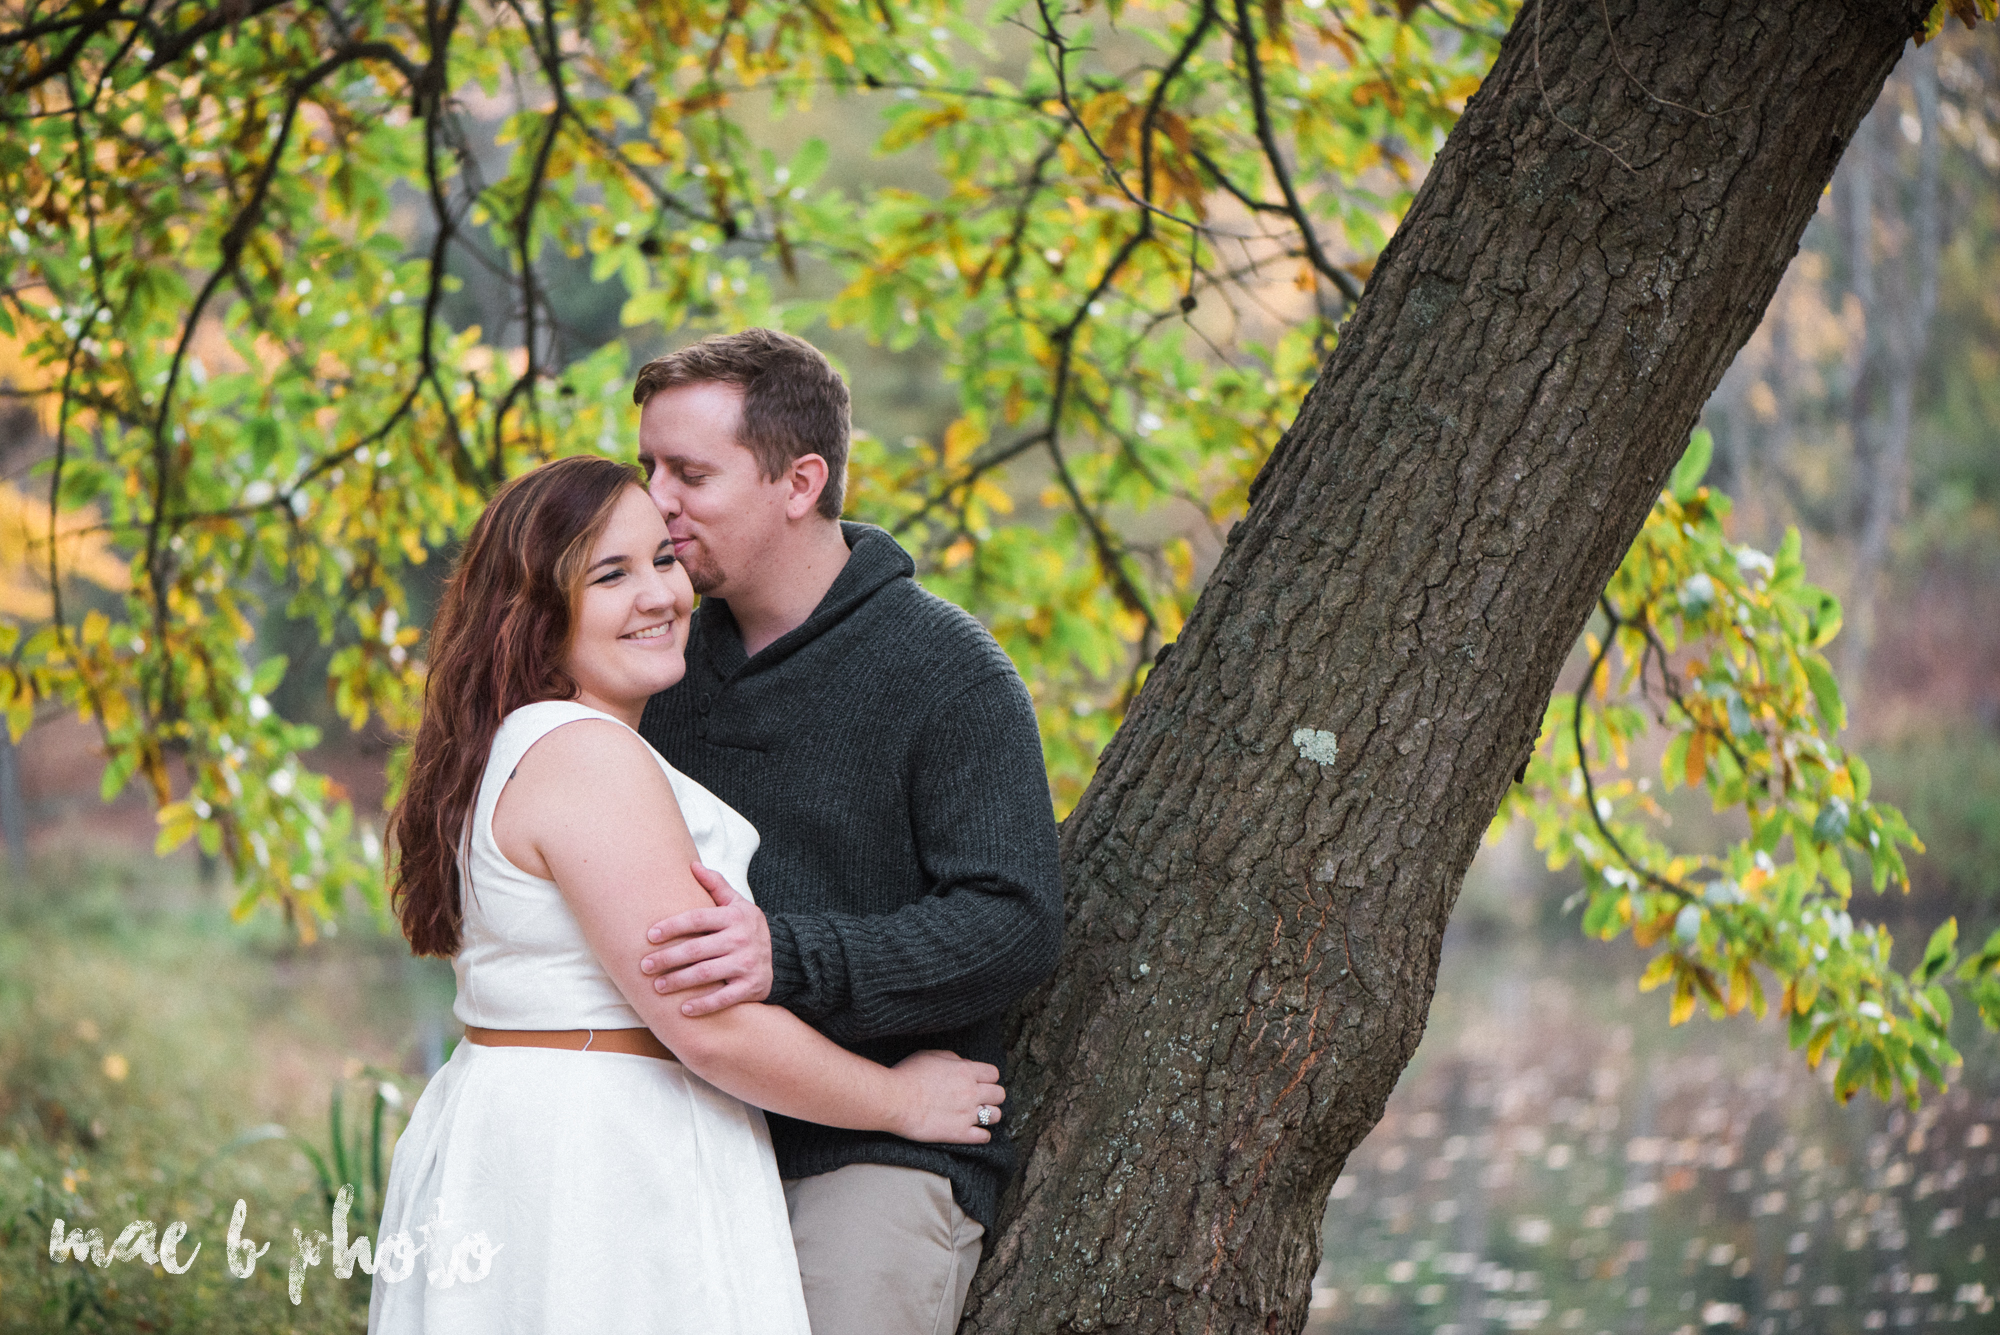 sarah and randy's personal fall engagement session at mill creek park in youngstown ohio-16.jpg